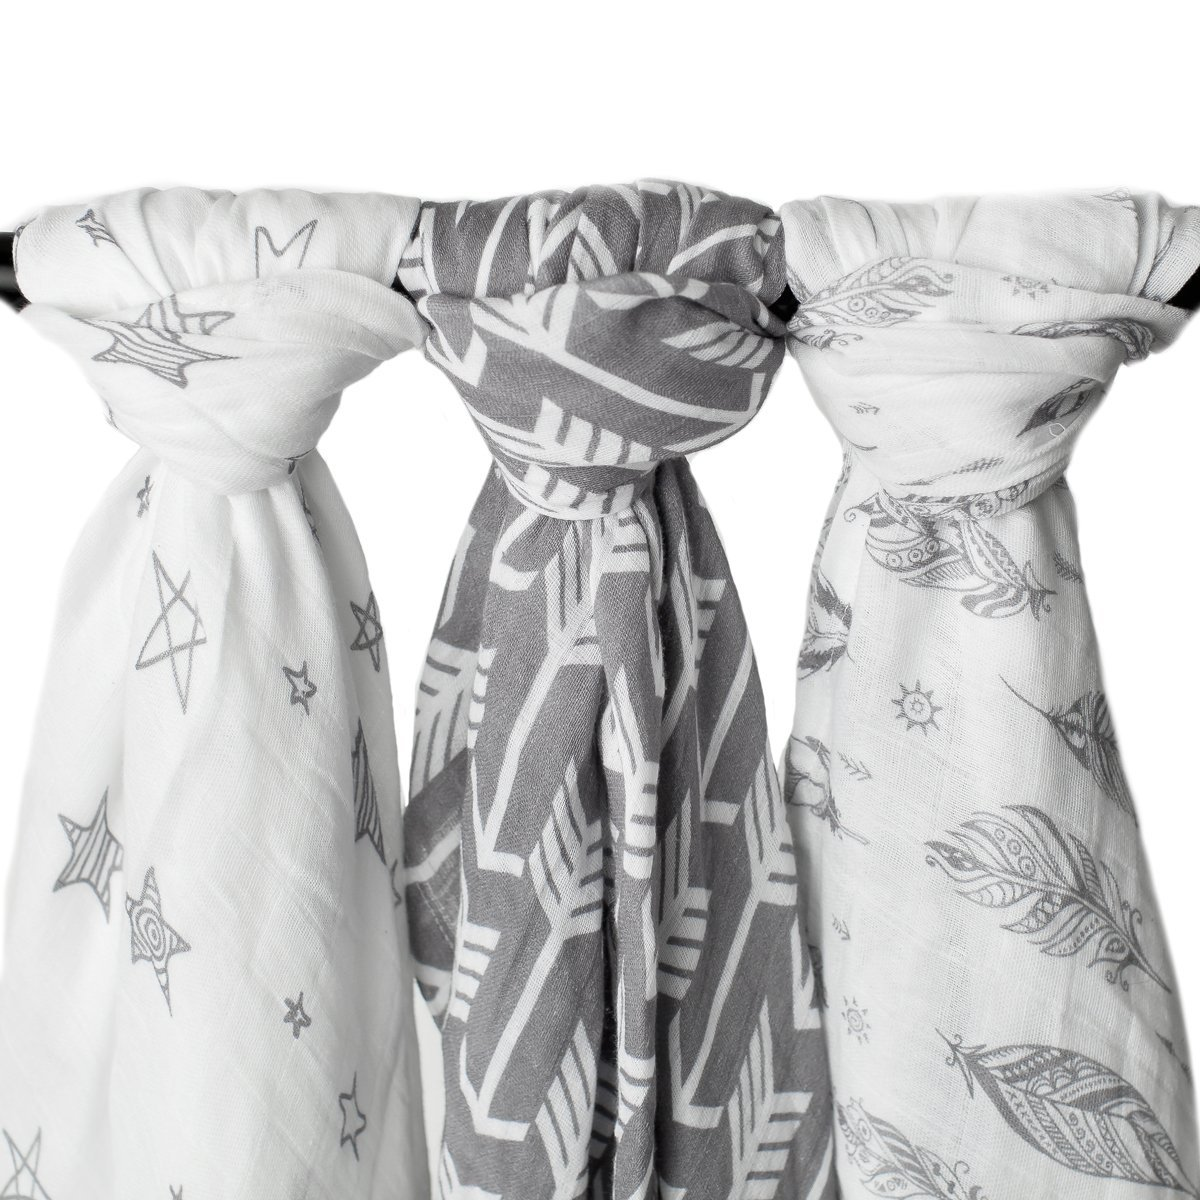 Muslin Swaddle Blankets''Wanderer Set'' Large 47x47 inch | Arrow, Feather, and Stars 3 Pack Baby Shower Gift Bundle by Kids N' Such